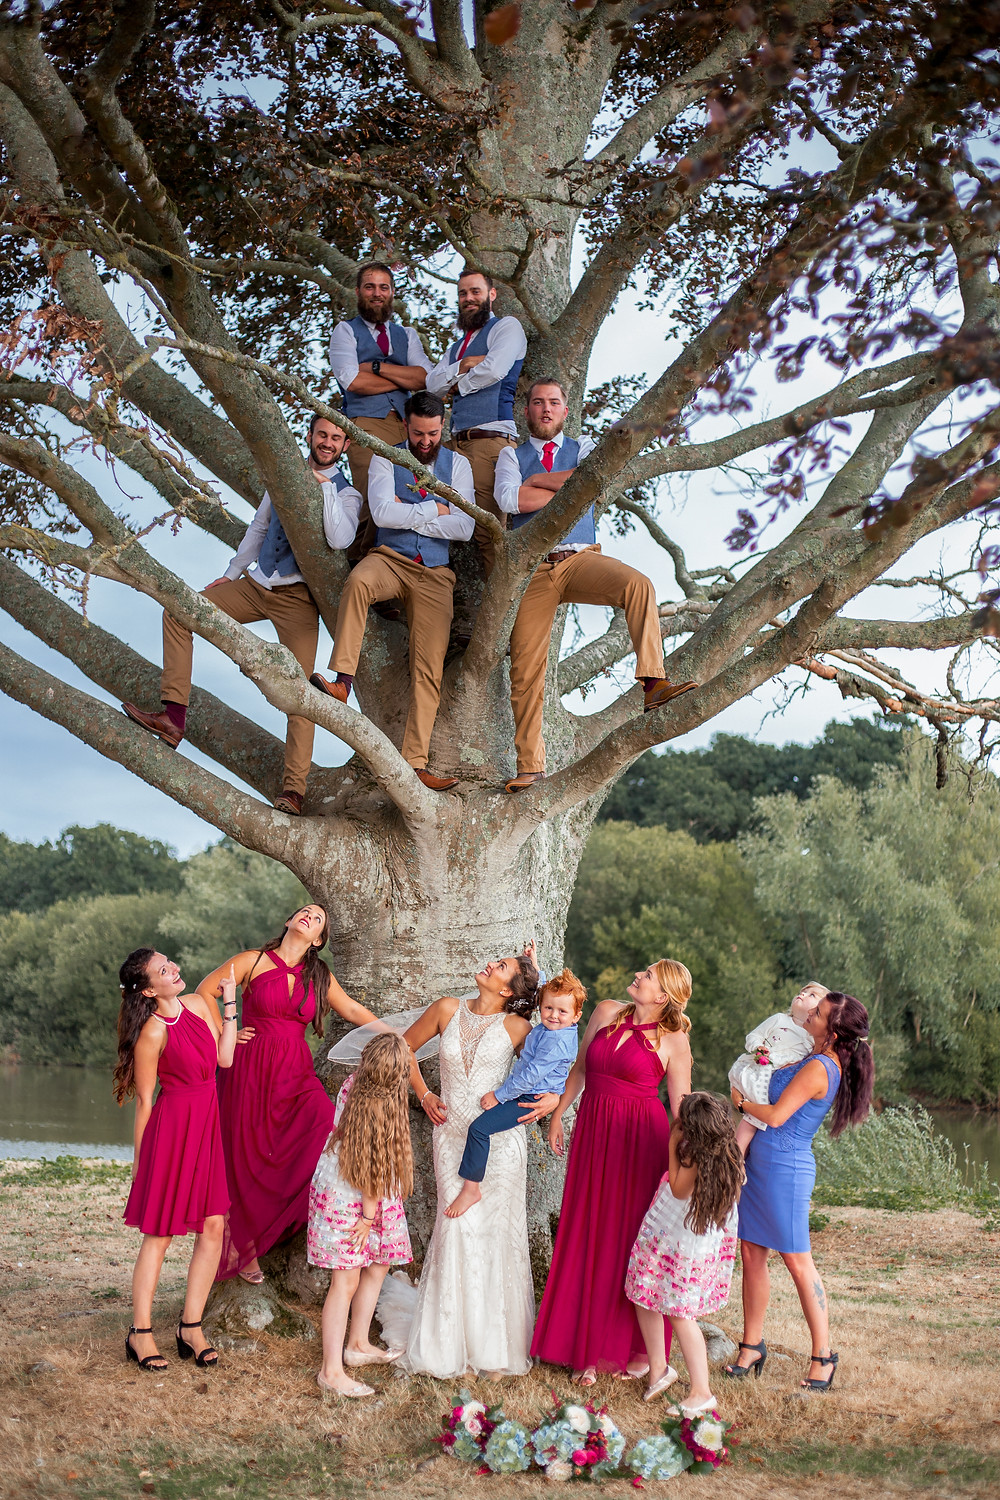 Bridal party in a tree